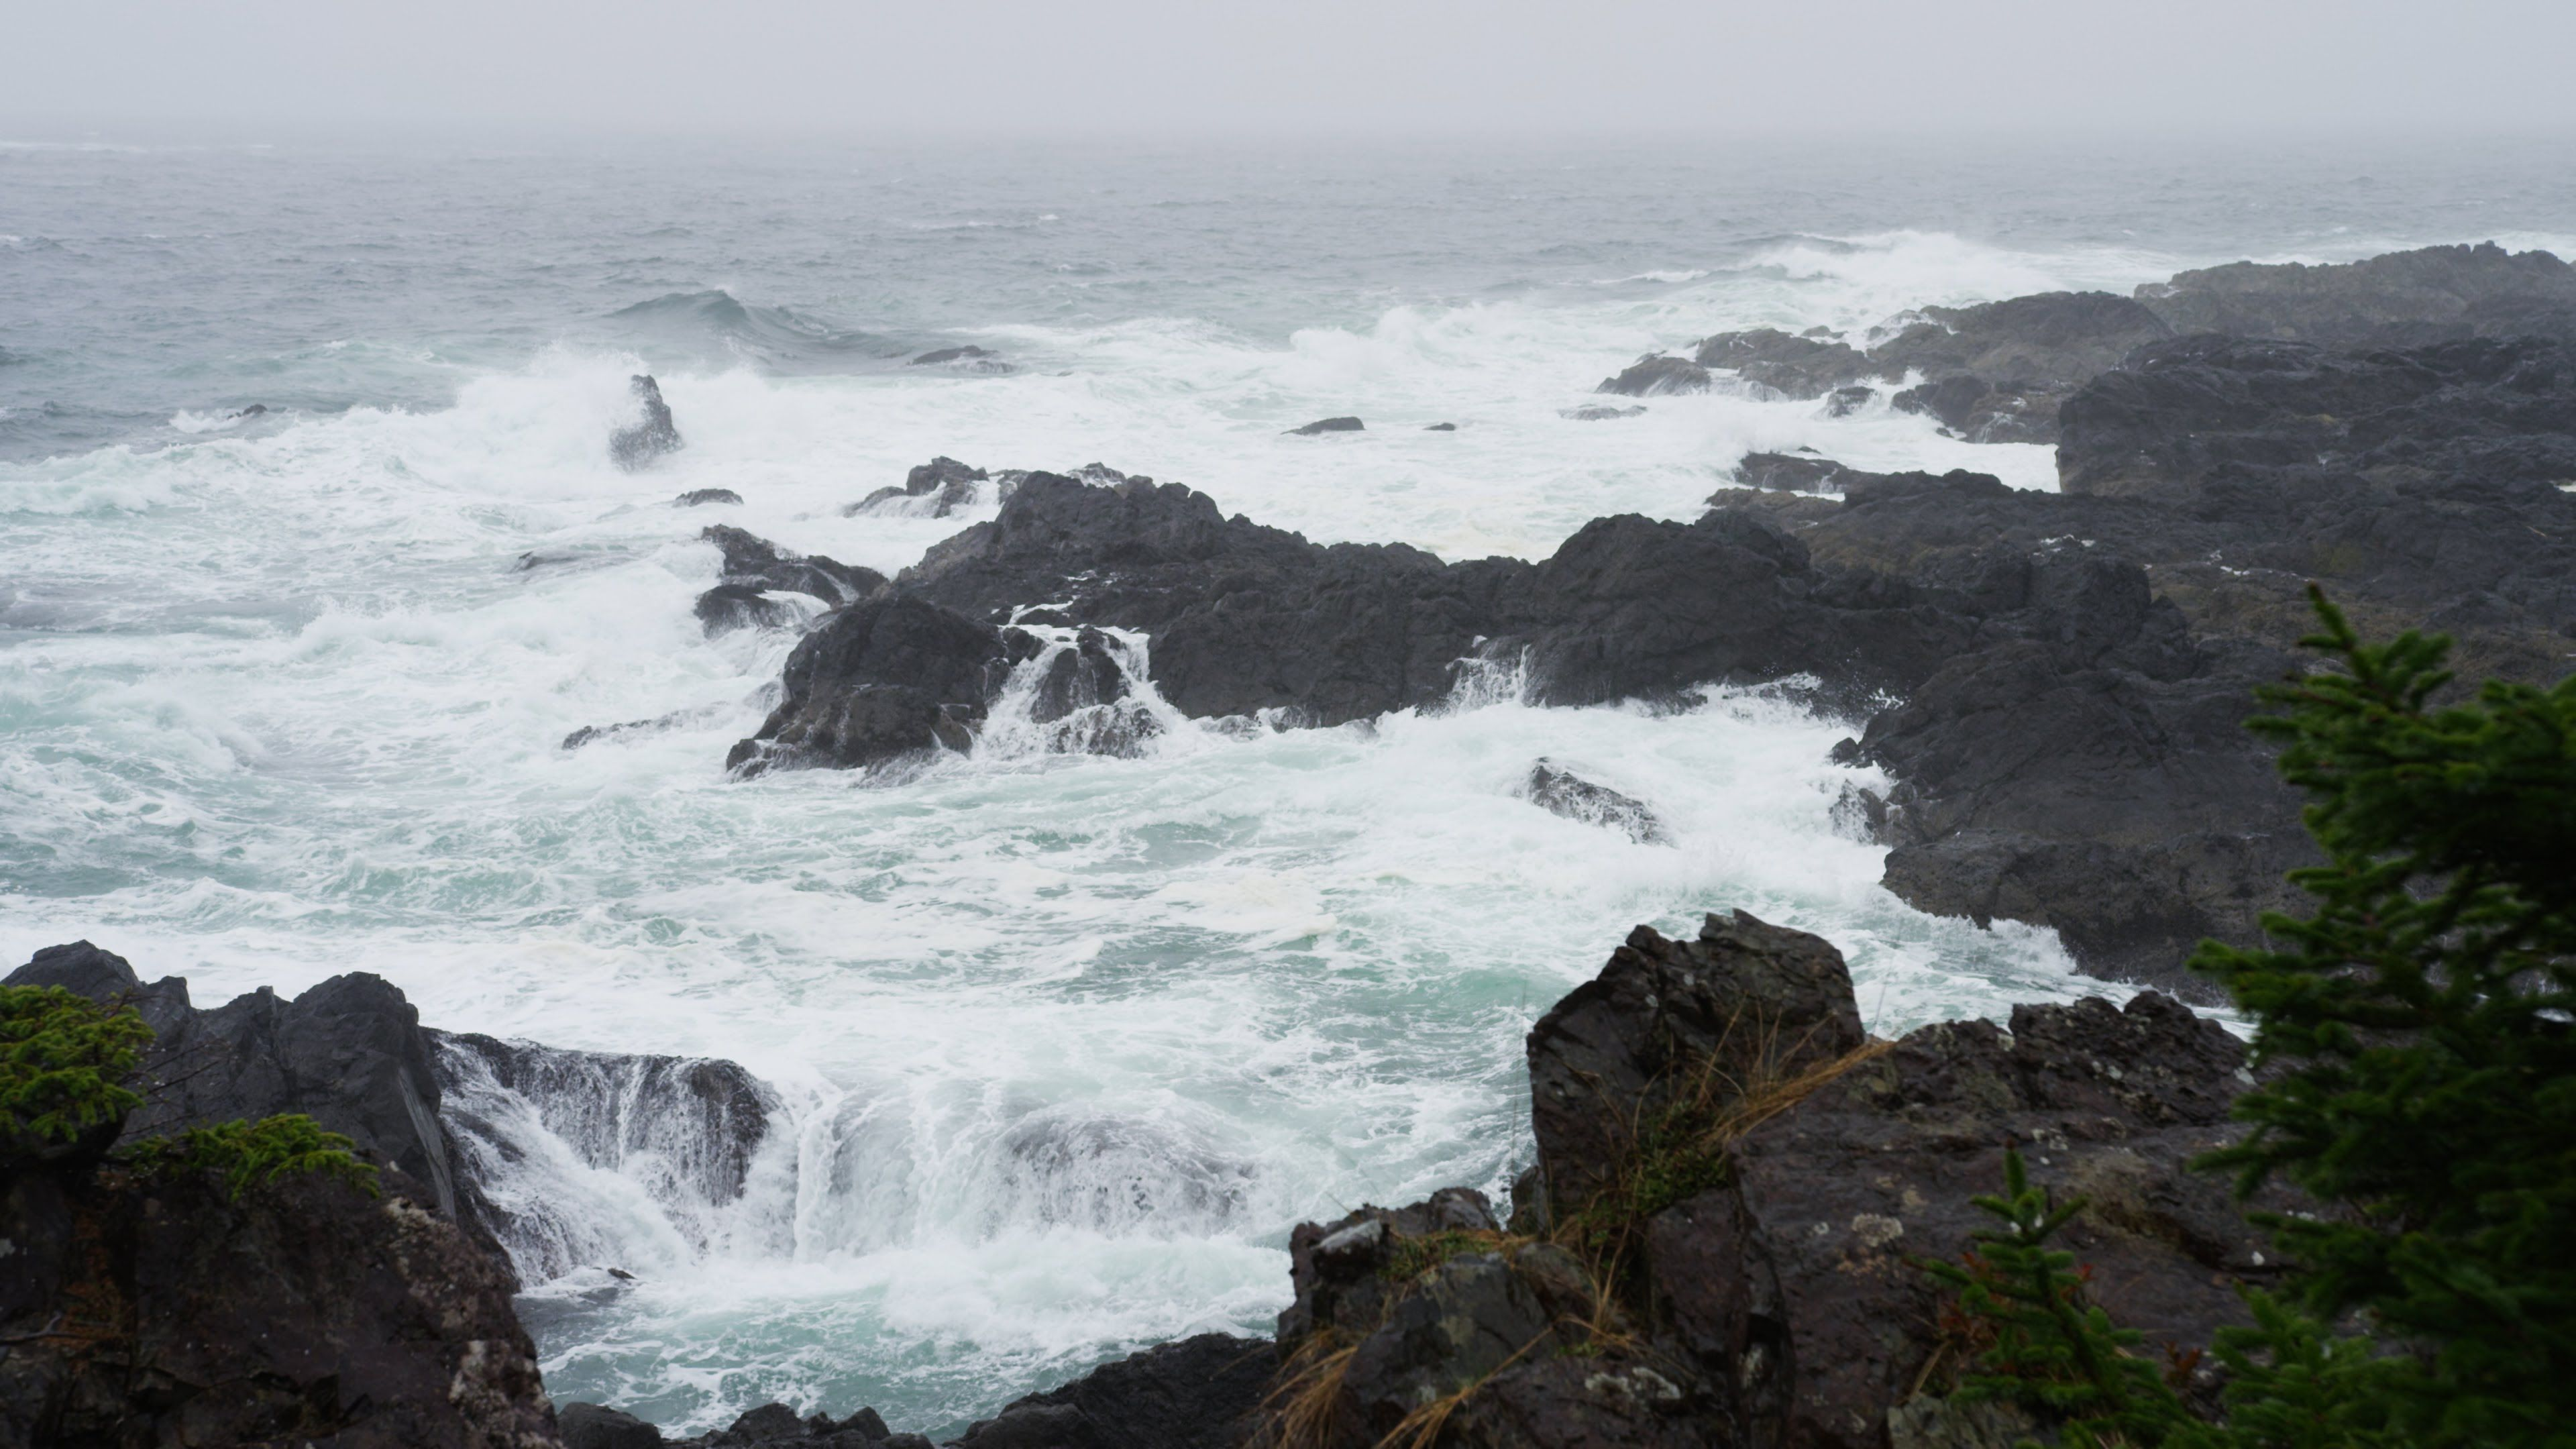 Rain sounds and ocean waves crashing on rocks with distant thunders